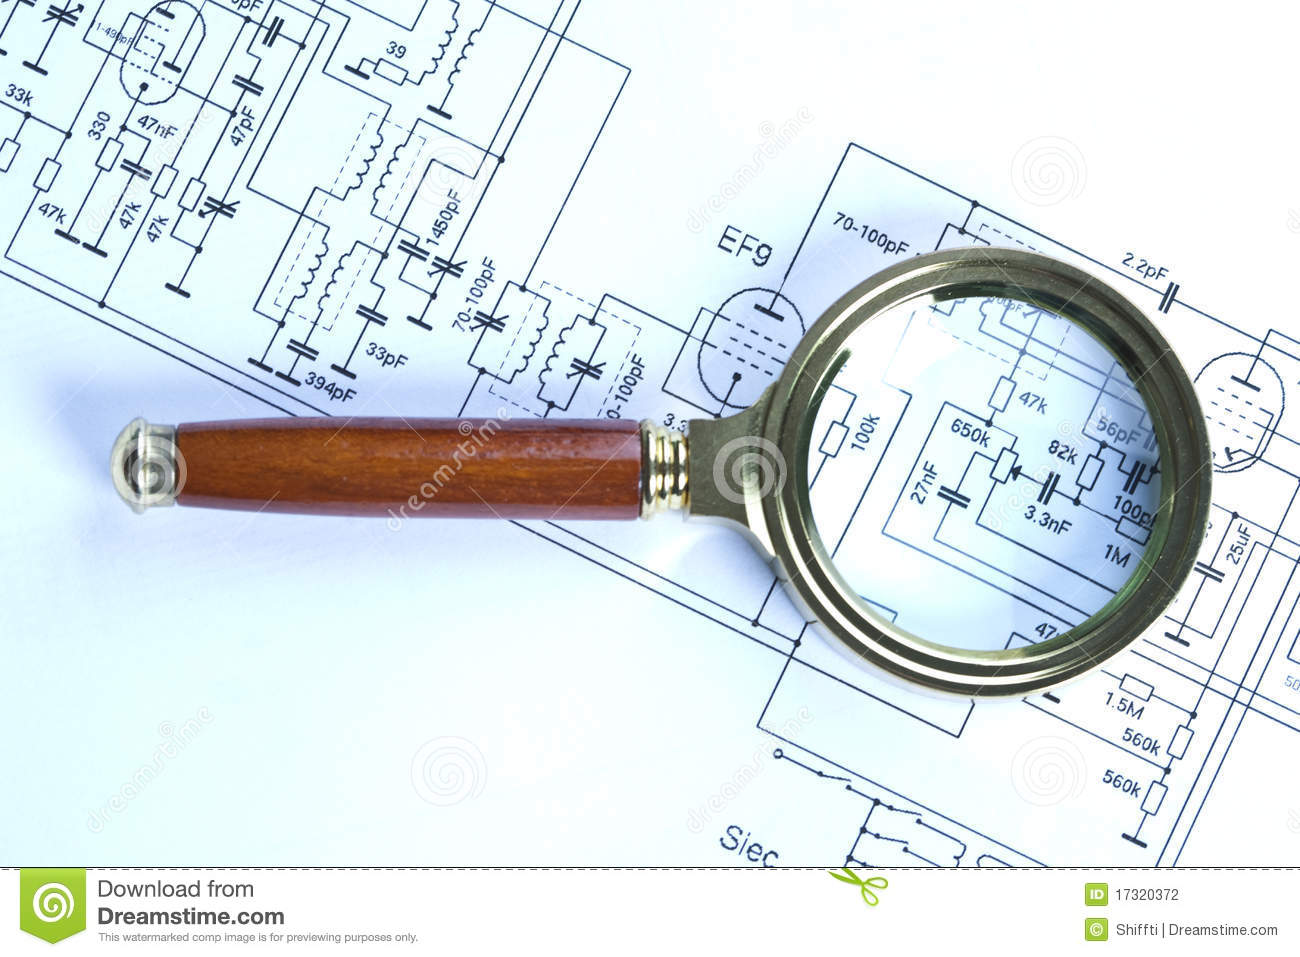 electronic schematic diagram stock photo image of graphic, circuit